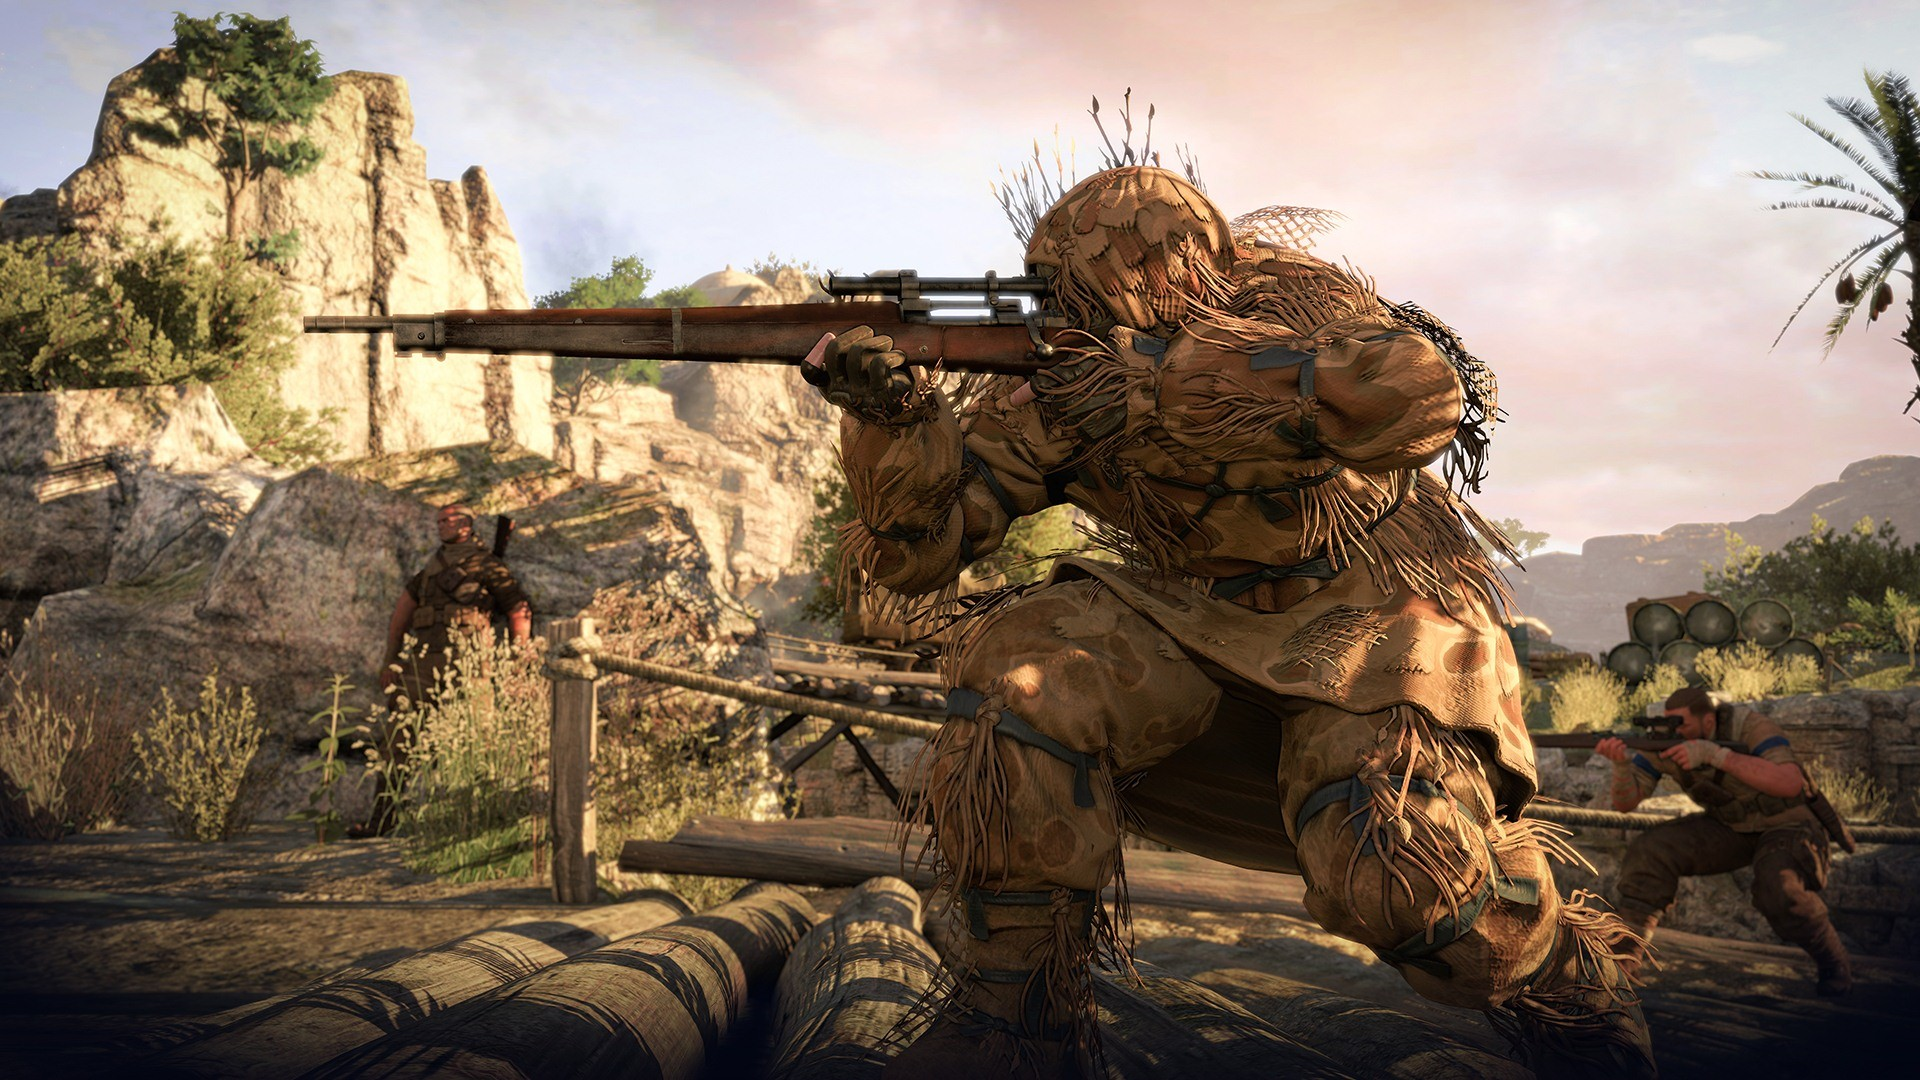 1920x1080 Sniper Elite Wallpaper 2701